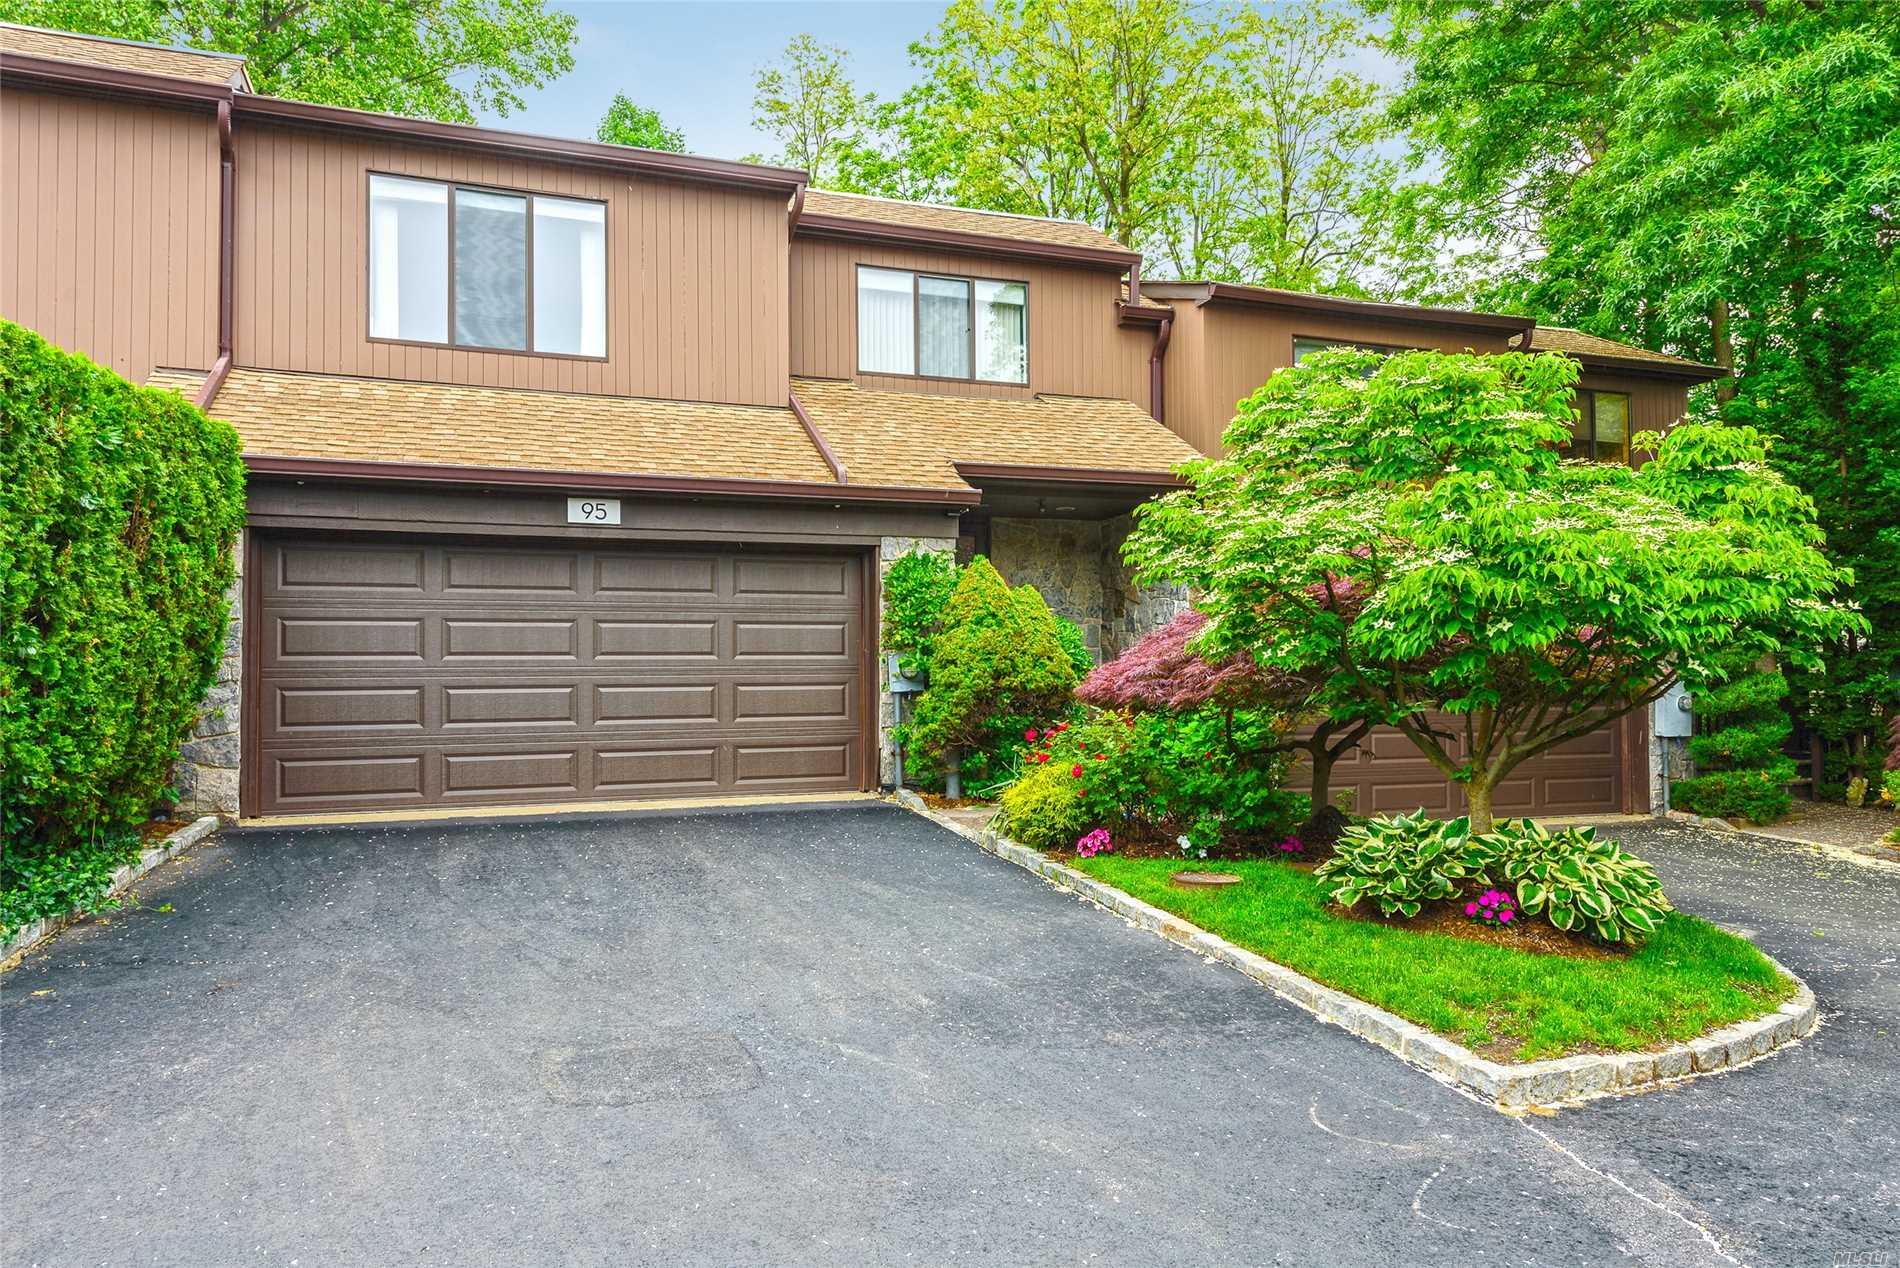 Property for sale at 95 Deer Run, Roslyn Heights,  NY 11577